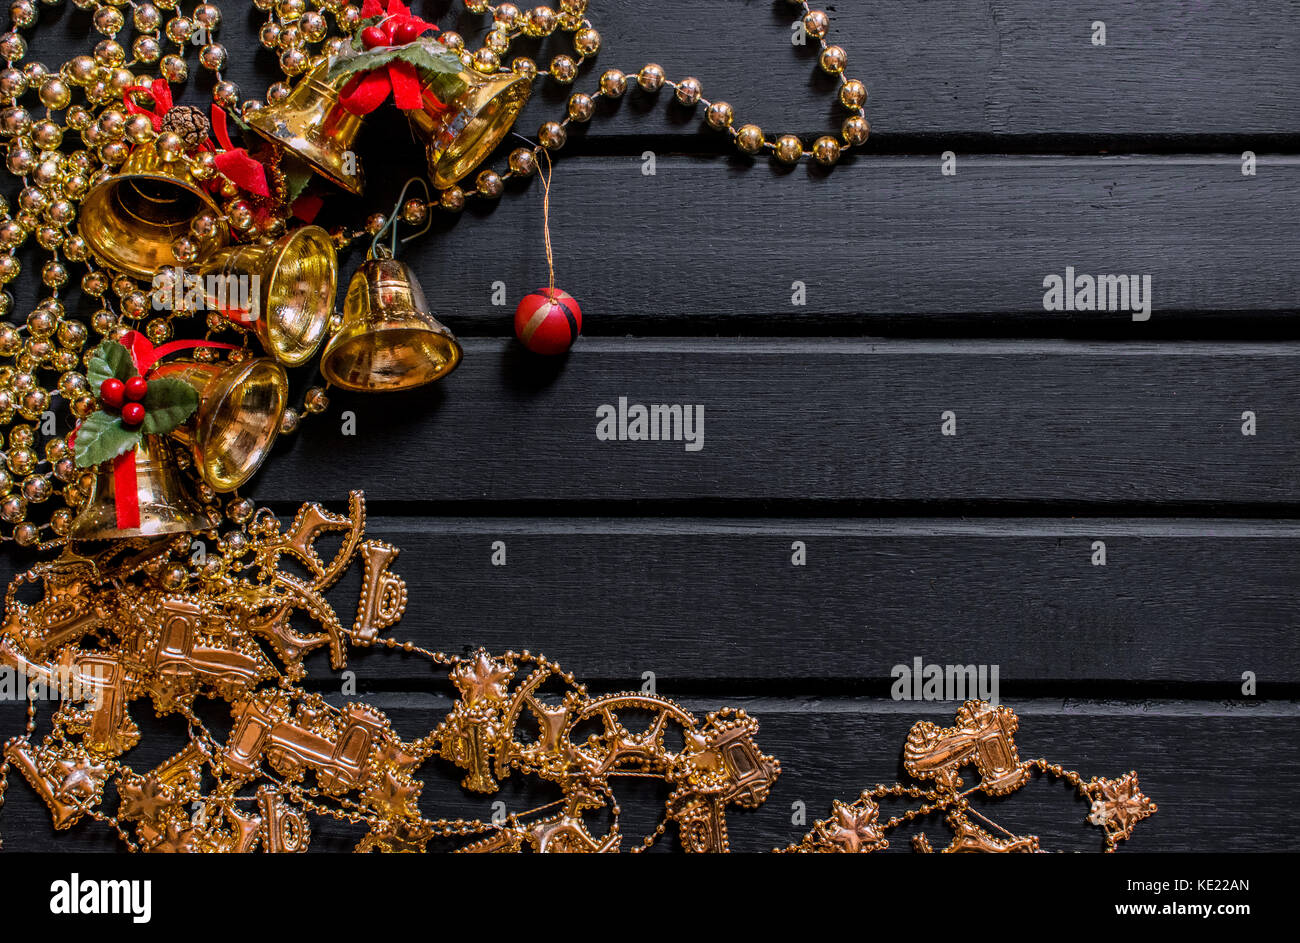 Christmas decoration background, on a black wooden backdrop, with bells, mistletoe, golden chains, balls and props - Stock Image